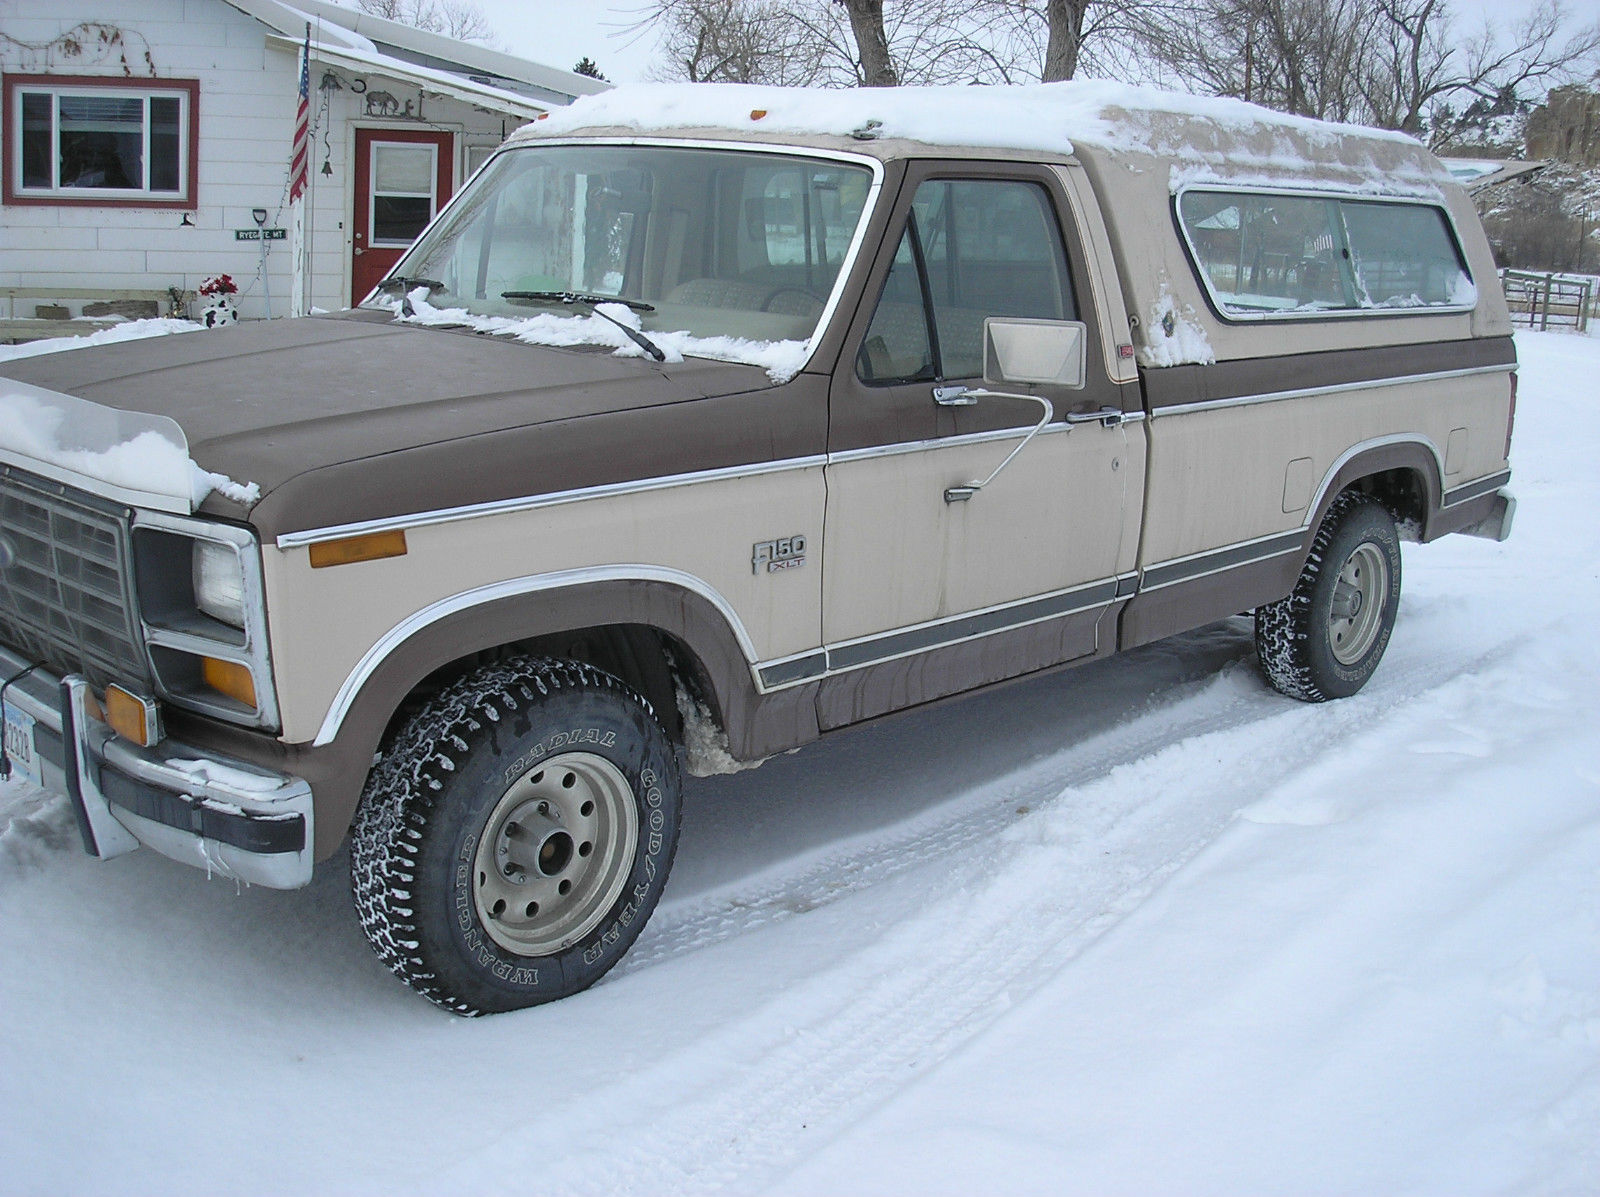 1982 ford f150 xlt lariat pickup truck 2 wheel drive 32000 miles for sale in ryegate montana. Black Bedroom Furniture Sets. Home Design Ideas